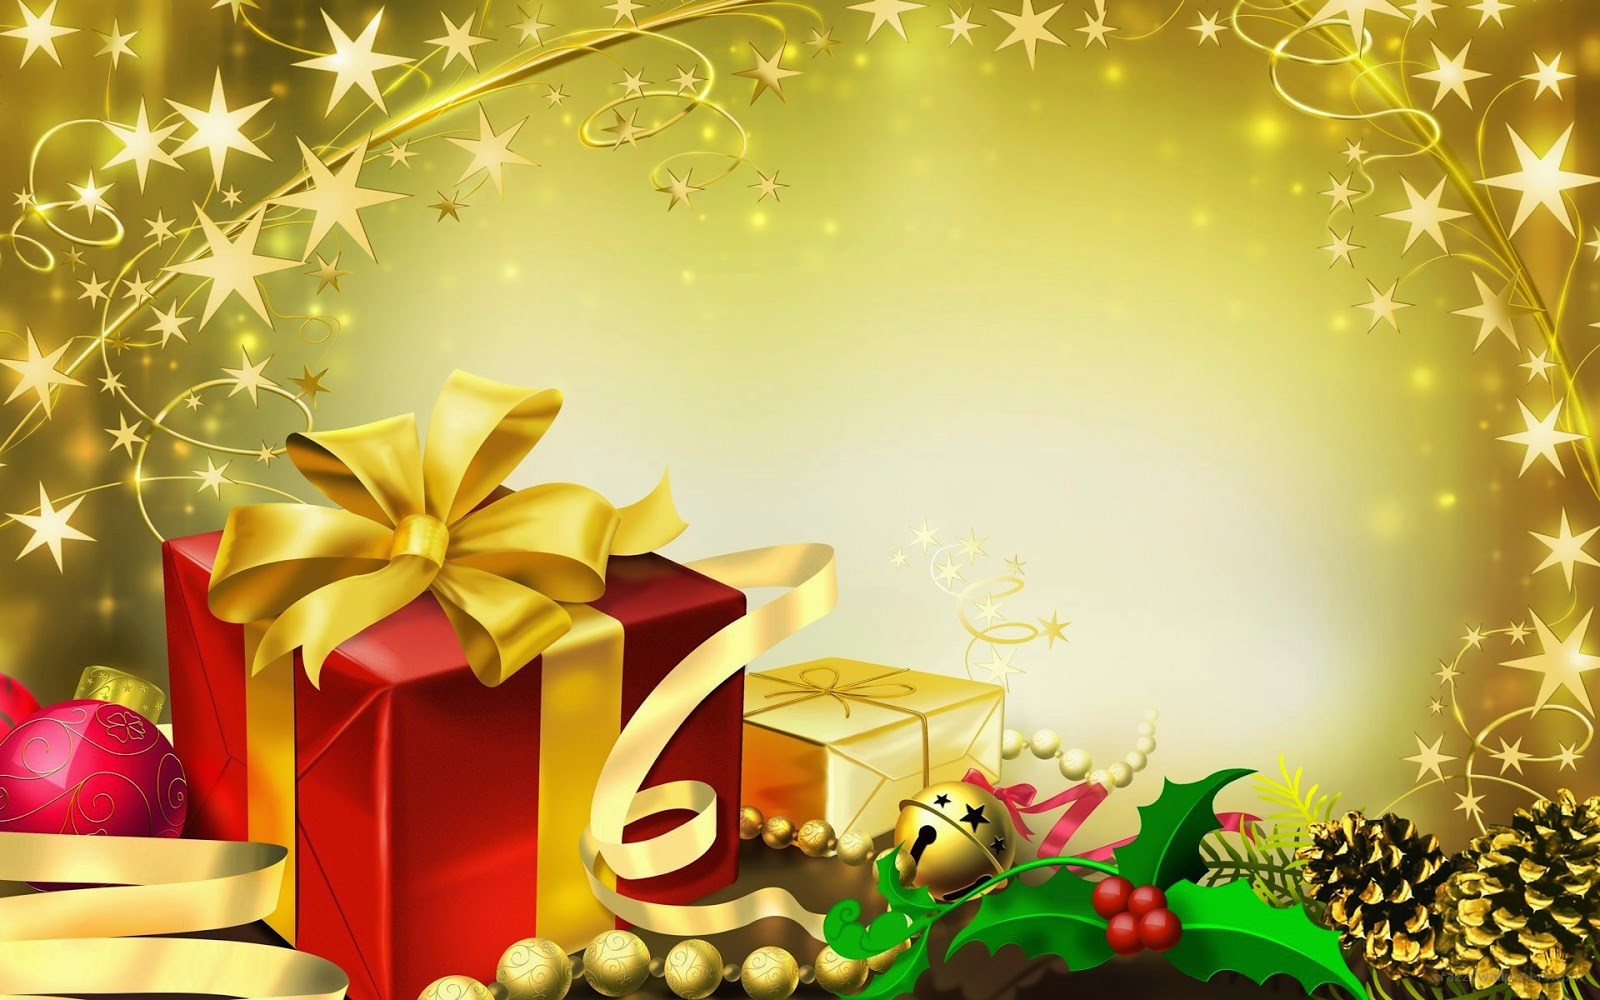 Images-for-sending-Christmas-wishes-to-friends-wisth-greetings-wishes-text-edit-through-email.jpg